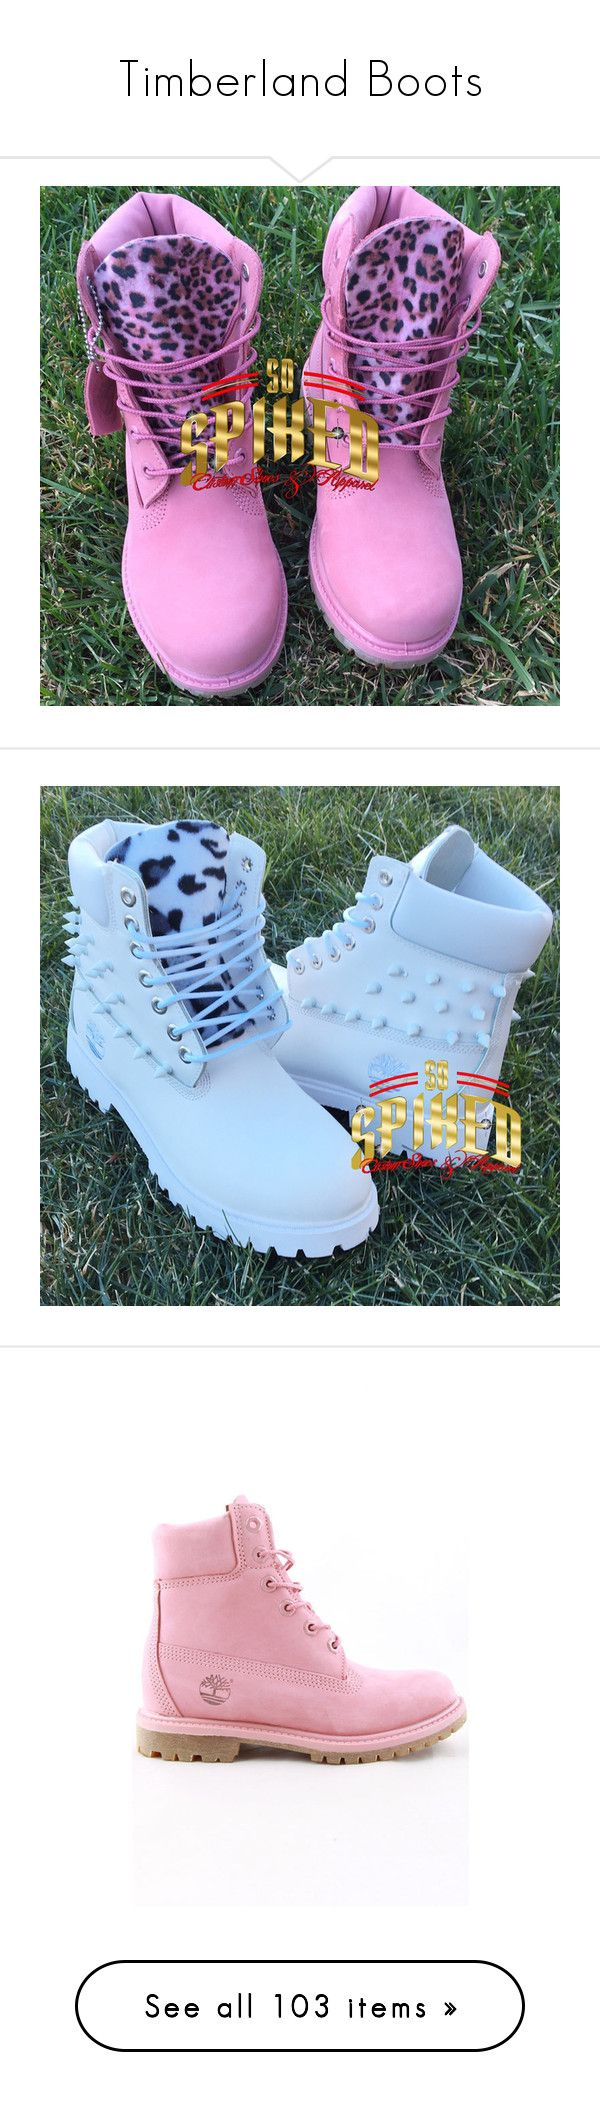 """Timberland Boots"" by missk2blue ❤ liked on Polyvore featuring shoes, gold, women's shoes, rose shoes, gold shoes, gold spiked shoes, spike shoes, pink shoes, boots and black"